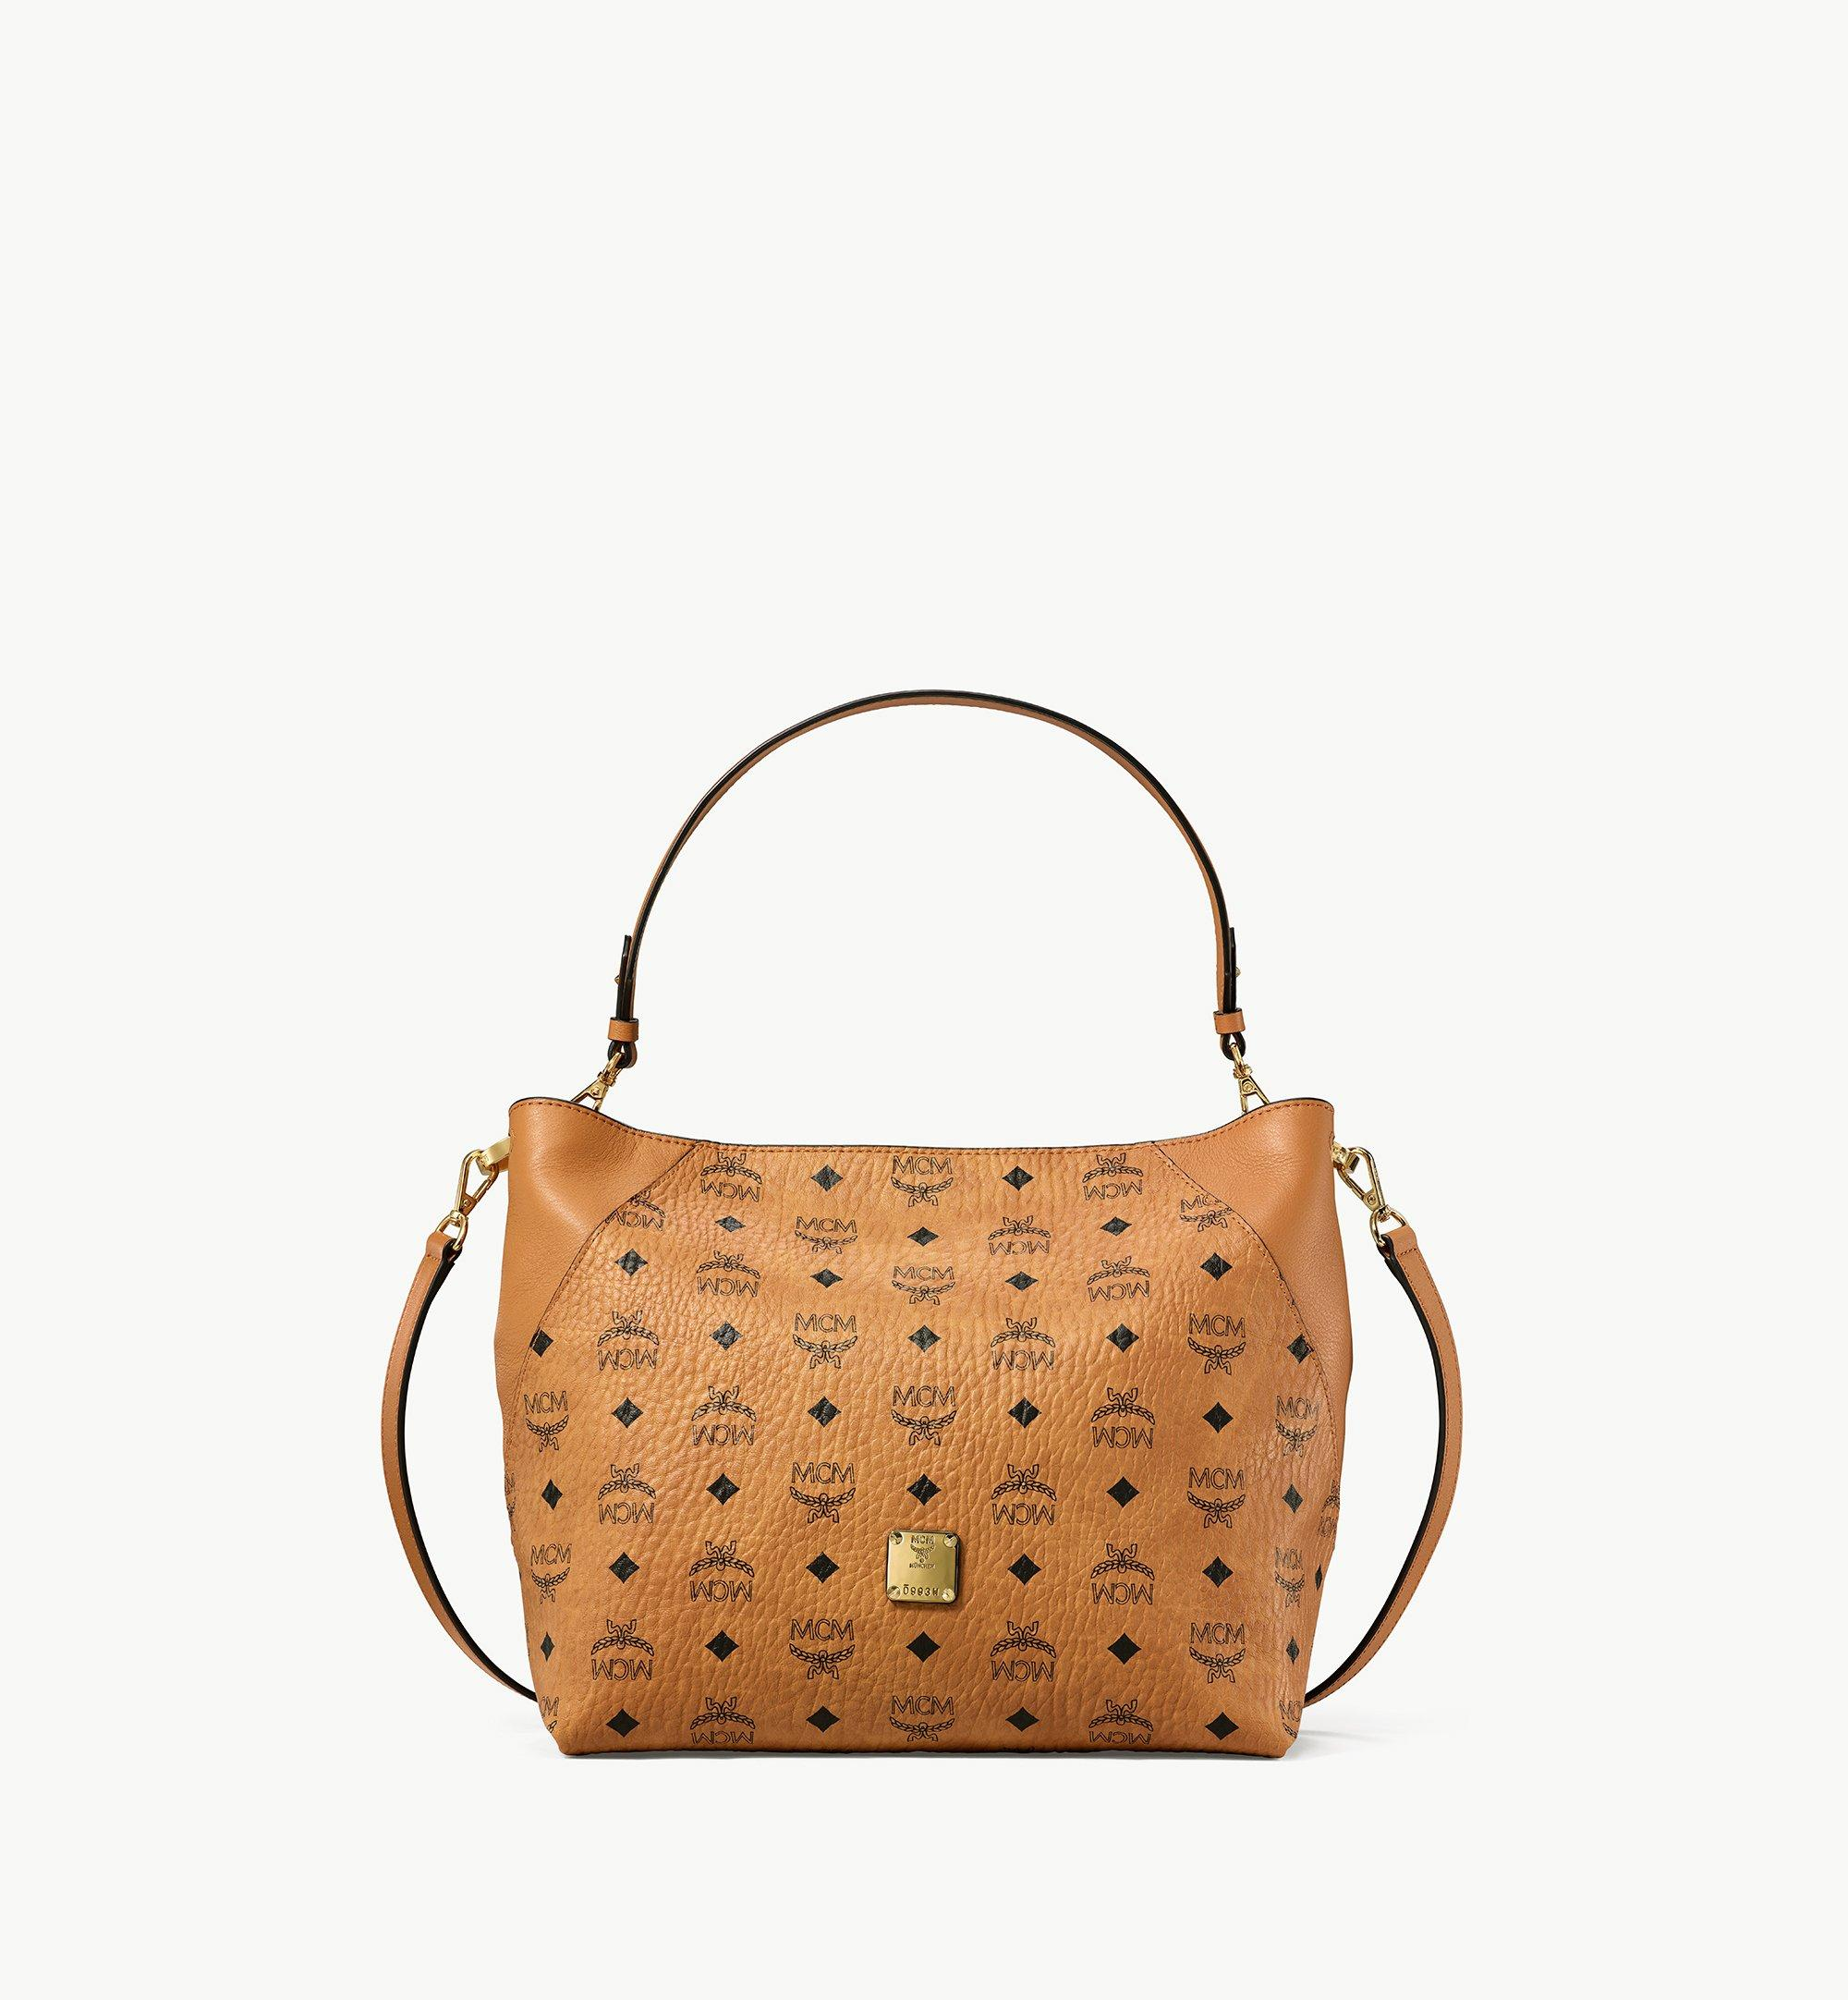 Medium Klara Hobo Tasche in Visetos Cognac | MCM® DE